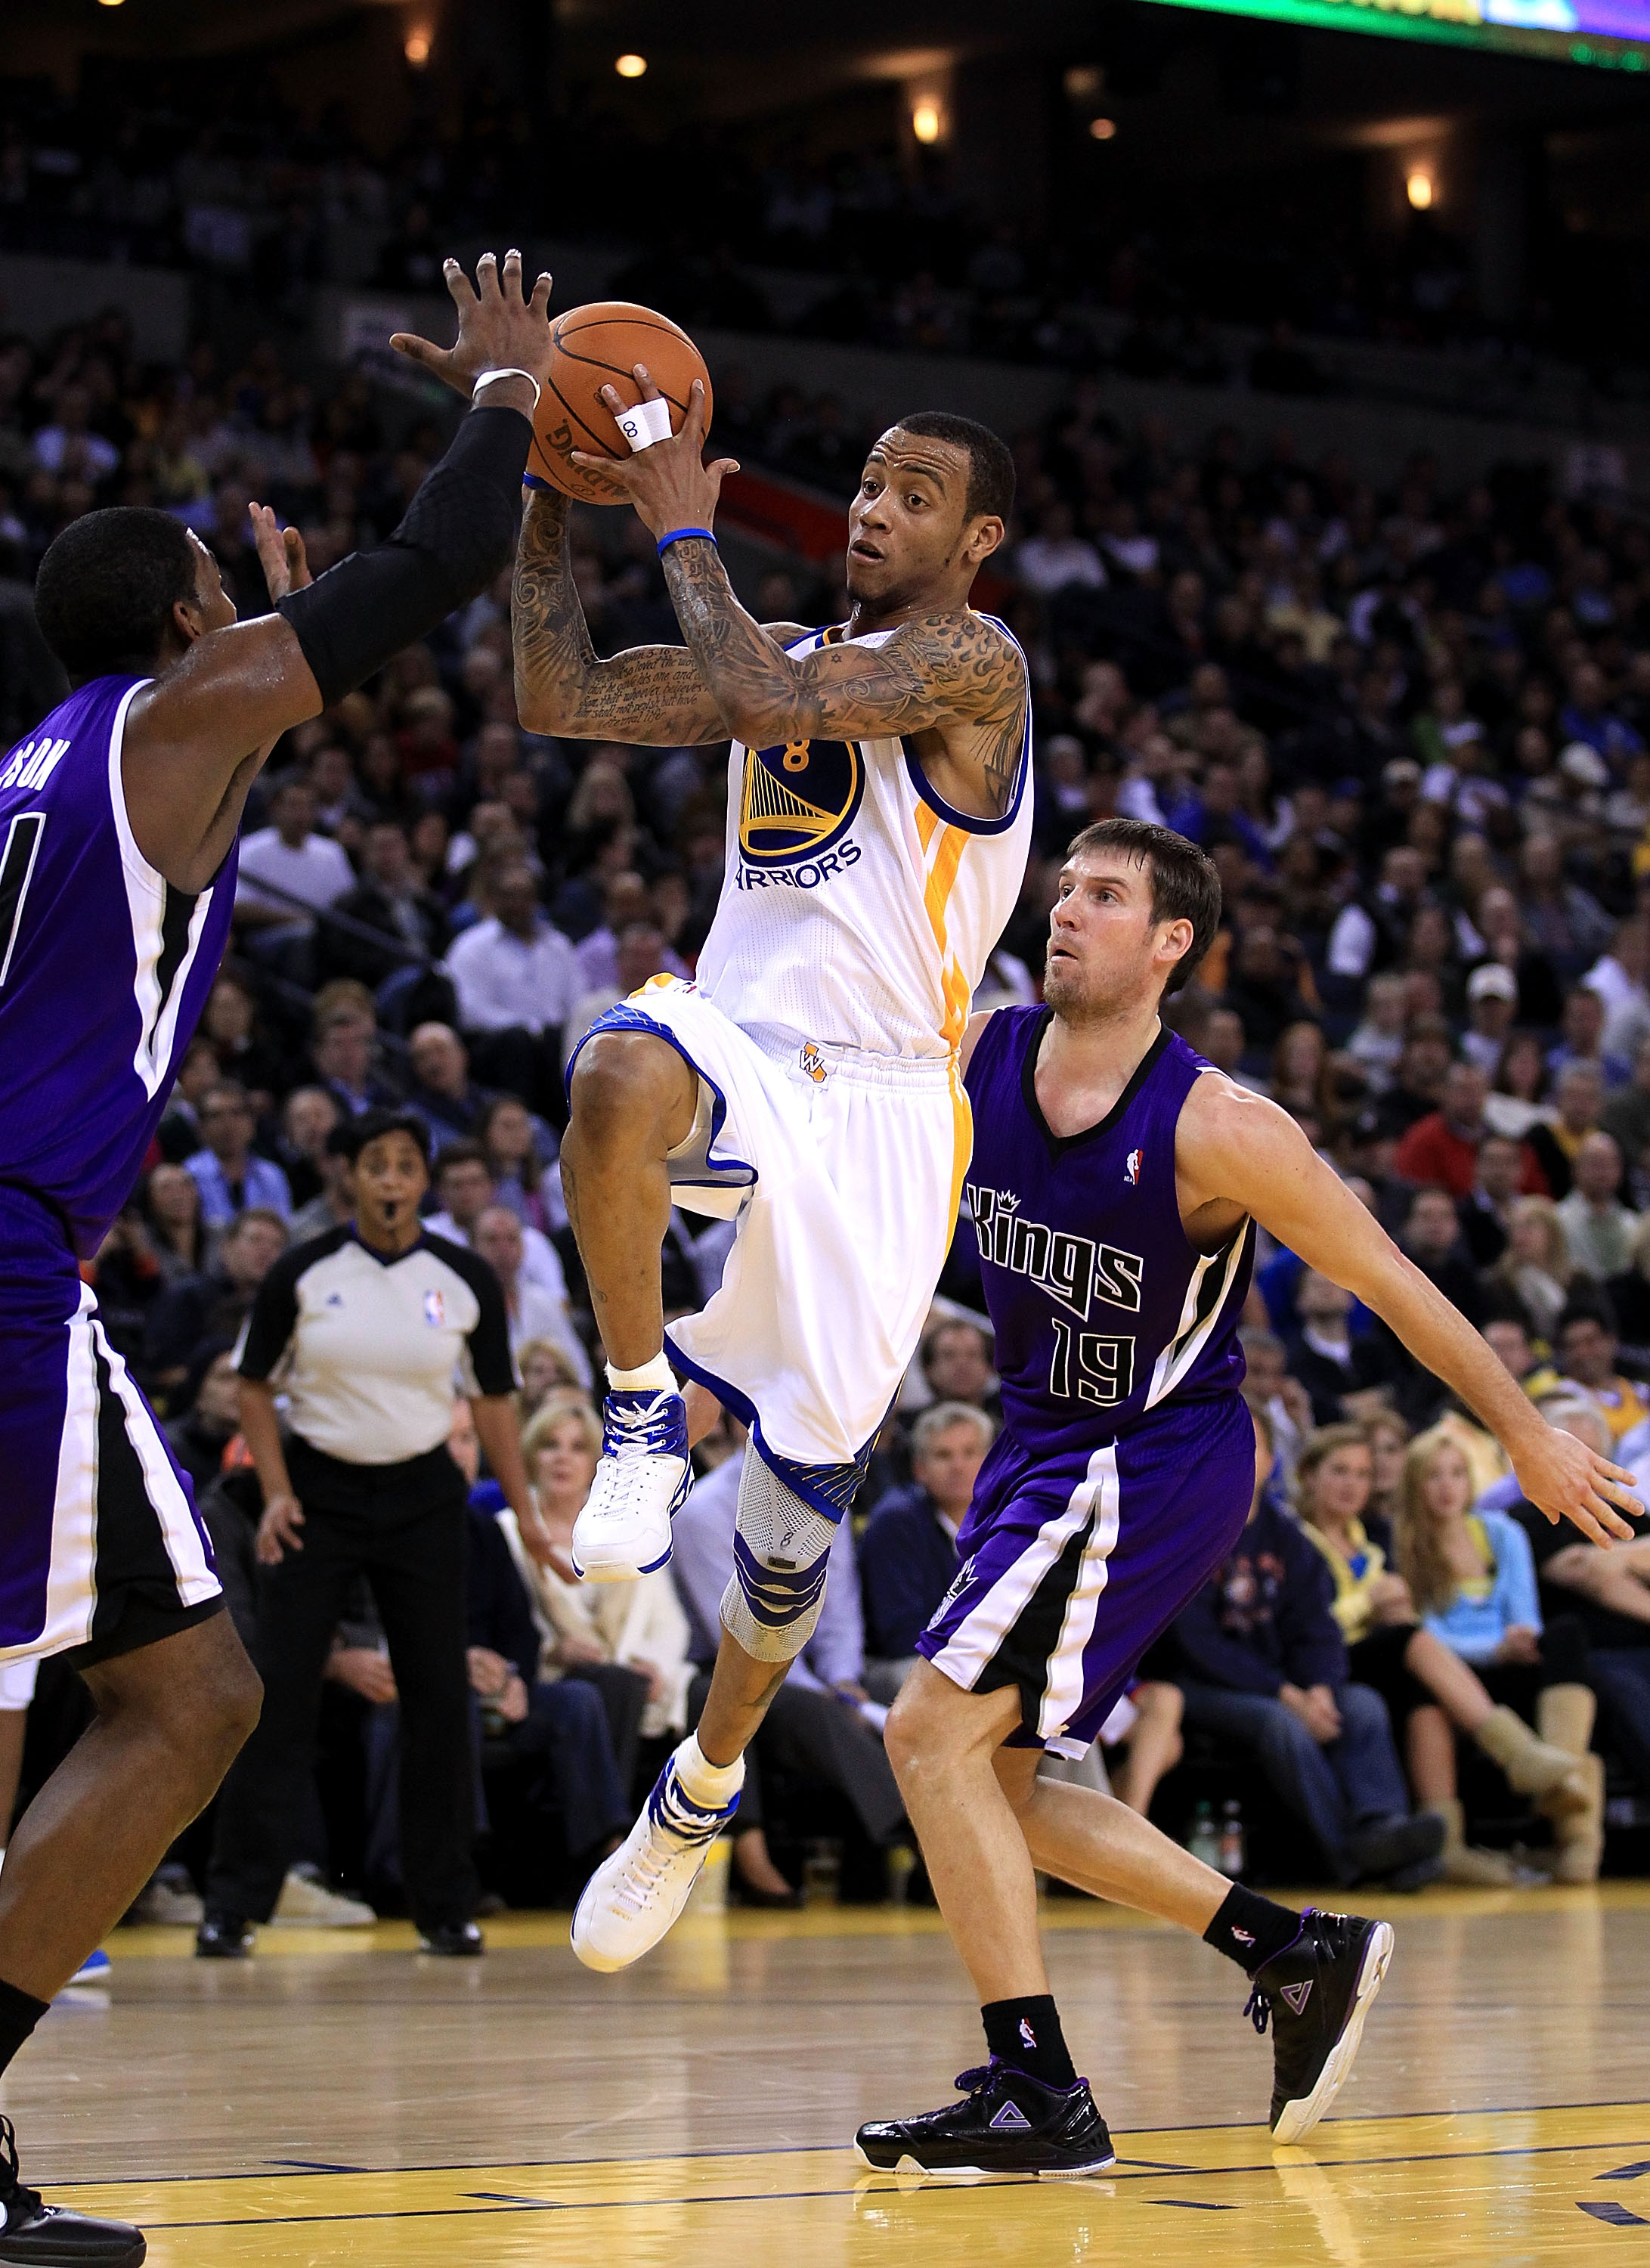 OAKLAND, CA - JANUARY 21:  Monta Ellis #8 of the Golden State Warriors drives to the basket during their game against the Sacramento Kings at Oracle Arena on January 21, 2011 in Oakland, California. NOTE TO USER: User expressly acknowledges and agrees tha